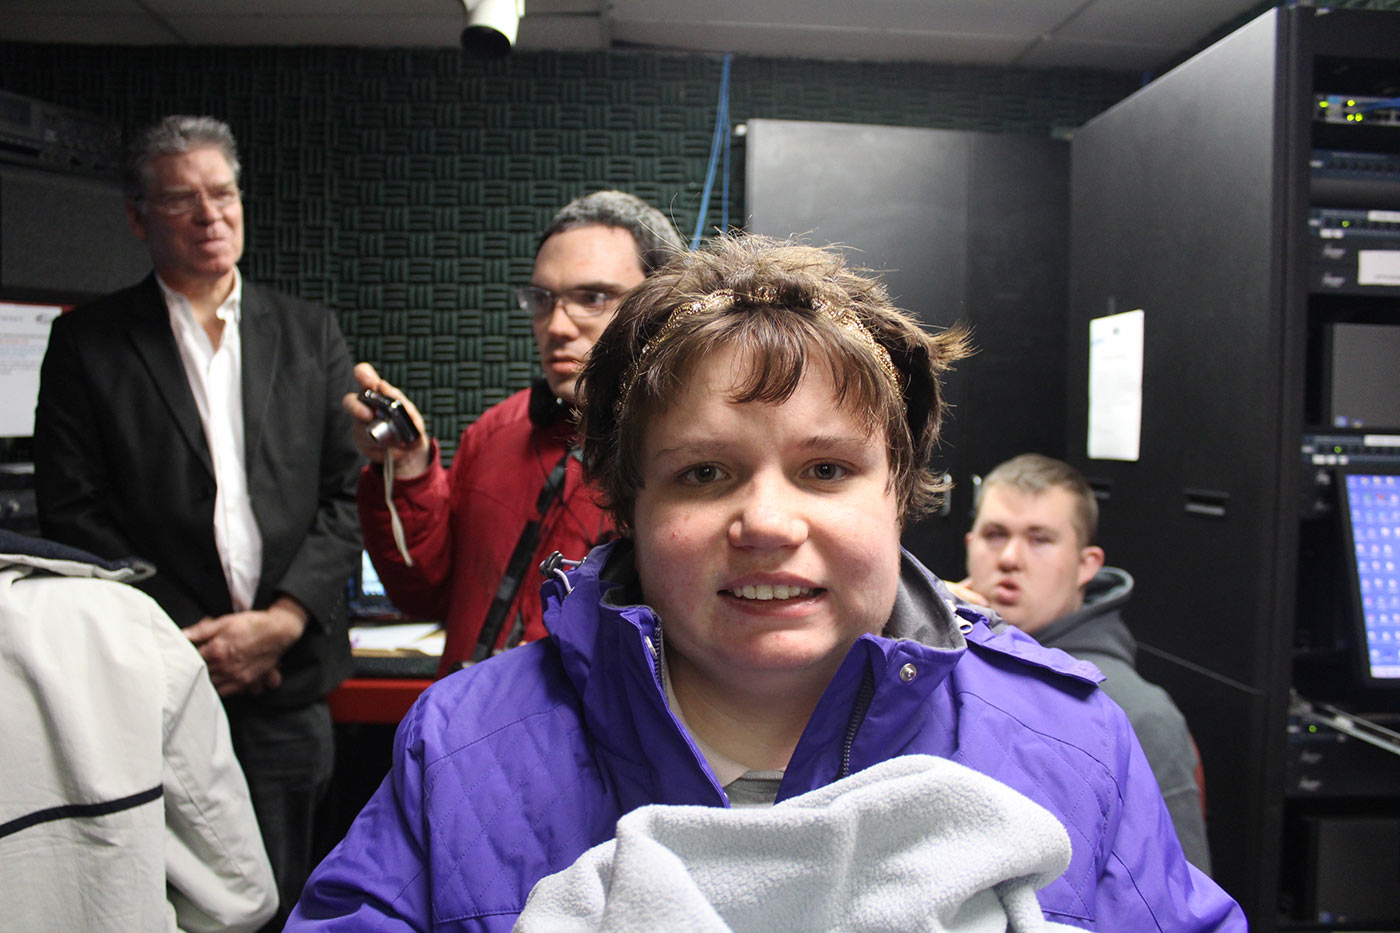 Girl in purple jacket in radio booth